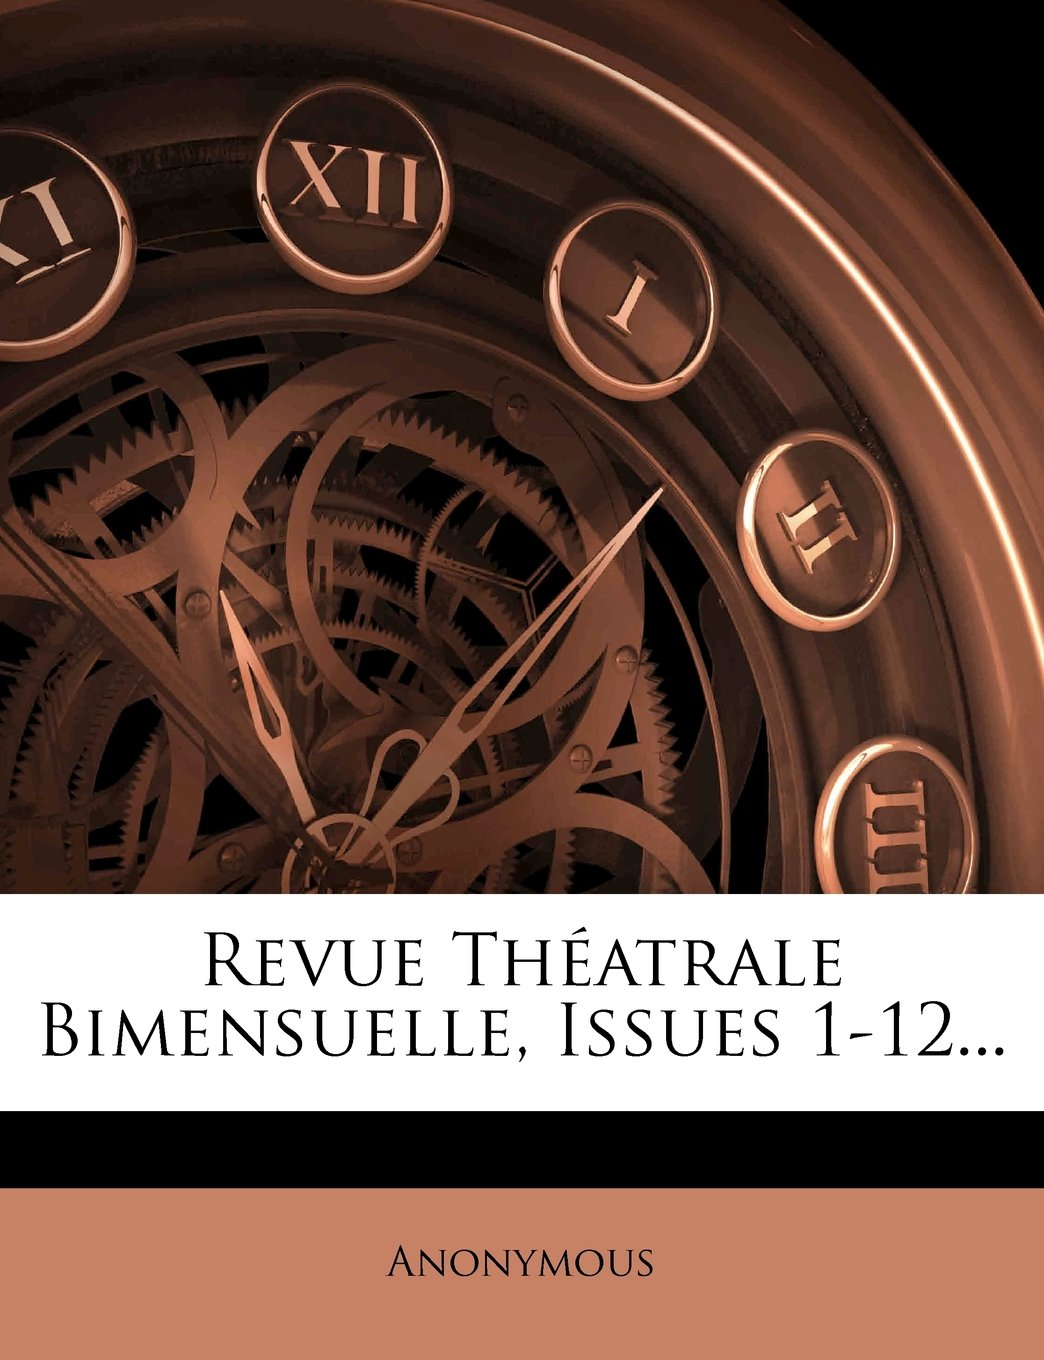 Revue Théatrale Bimensuelle Issues 1-12   French Edition  ebook by Anonymous